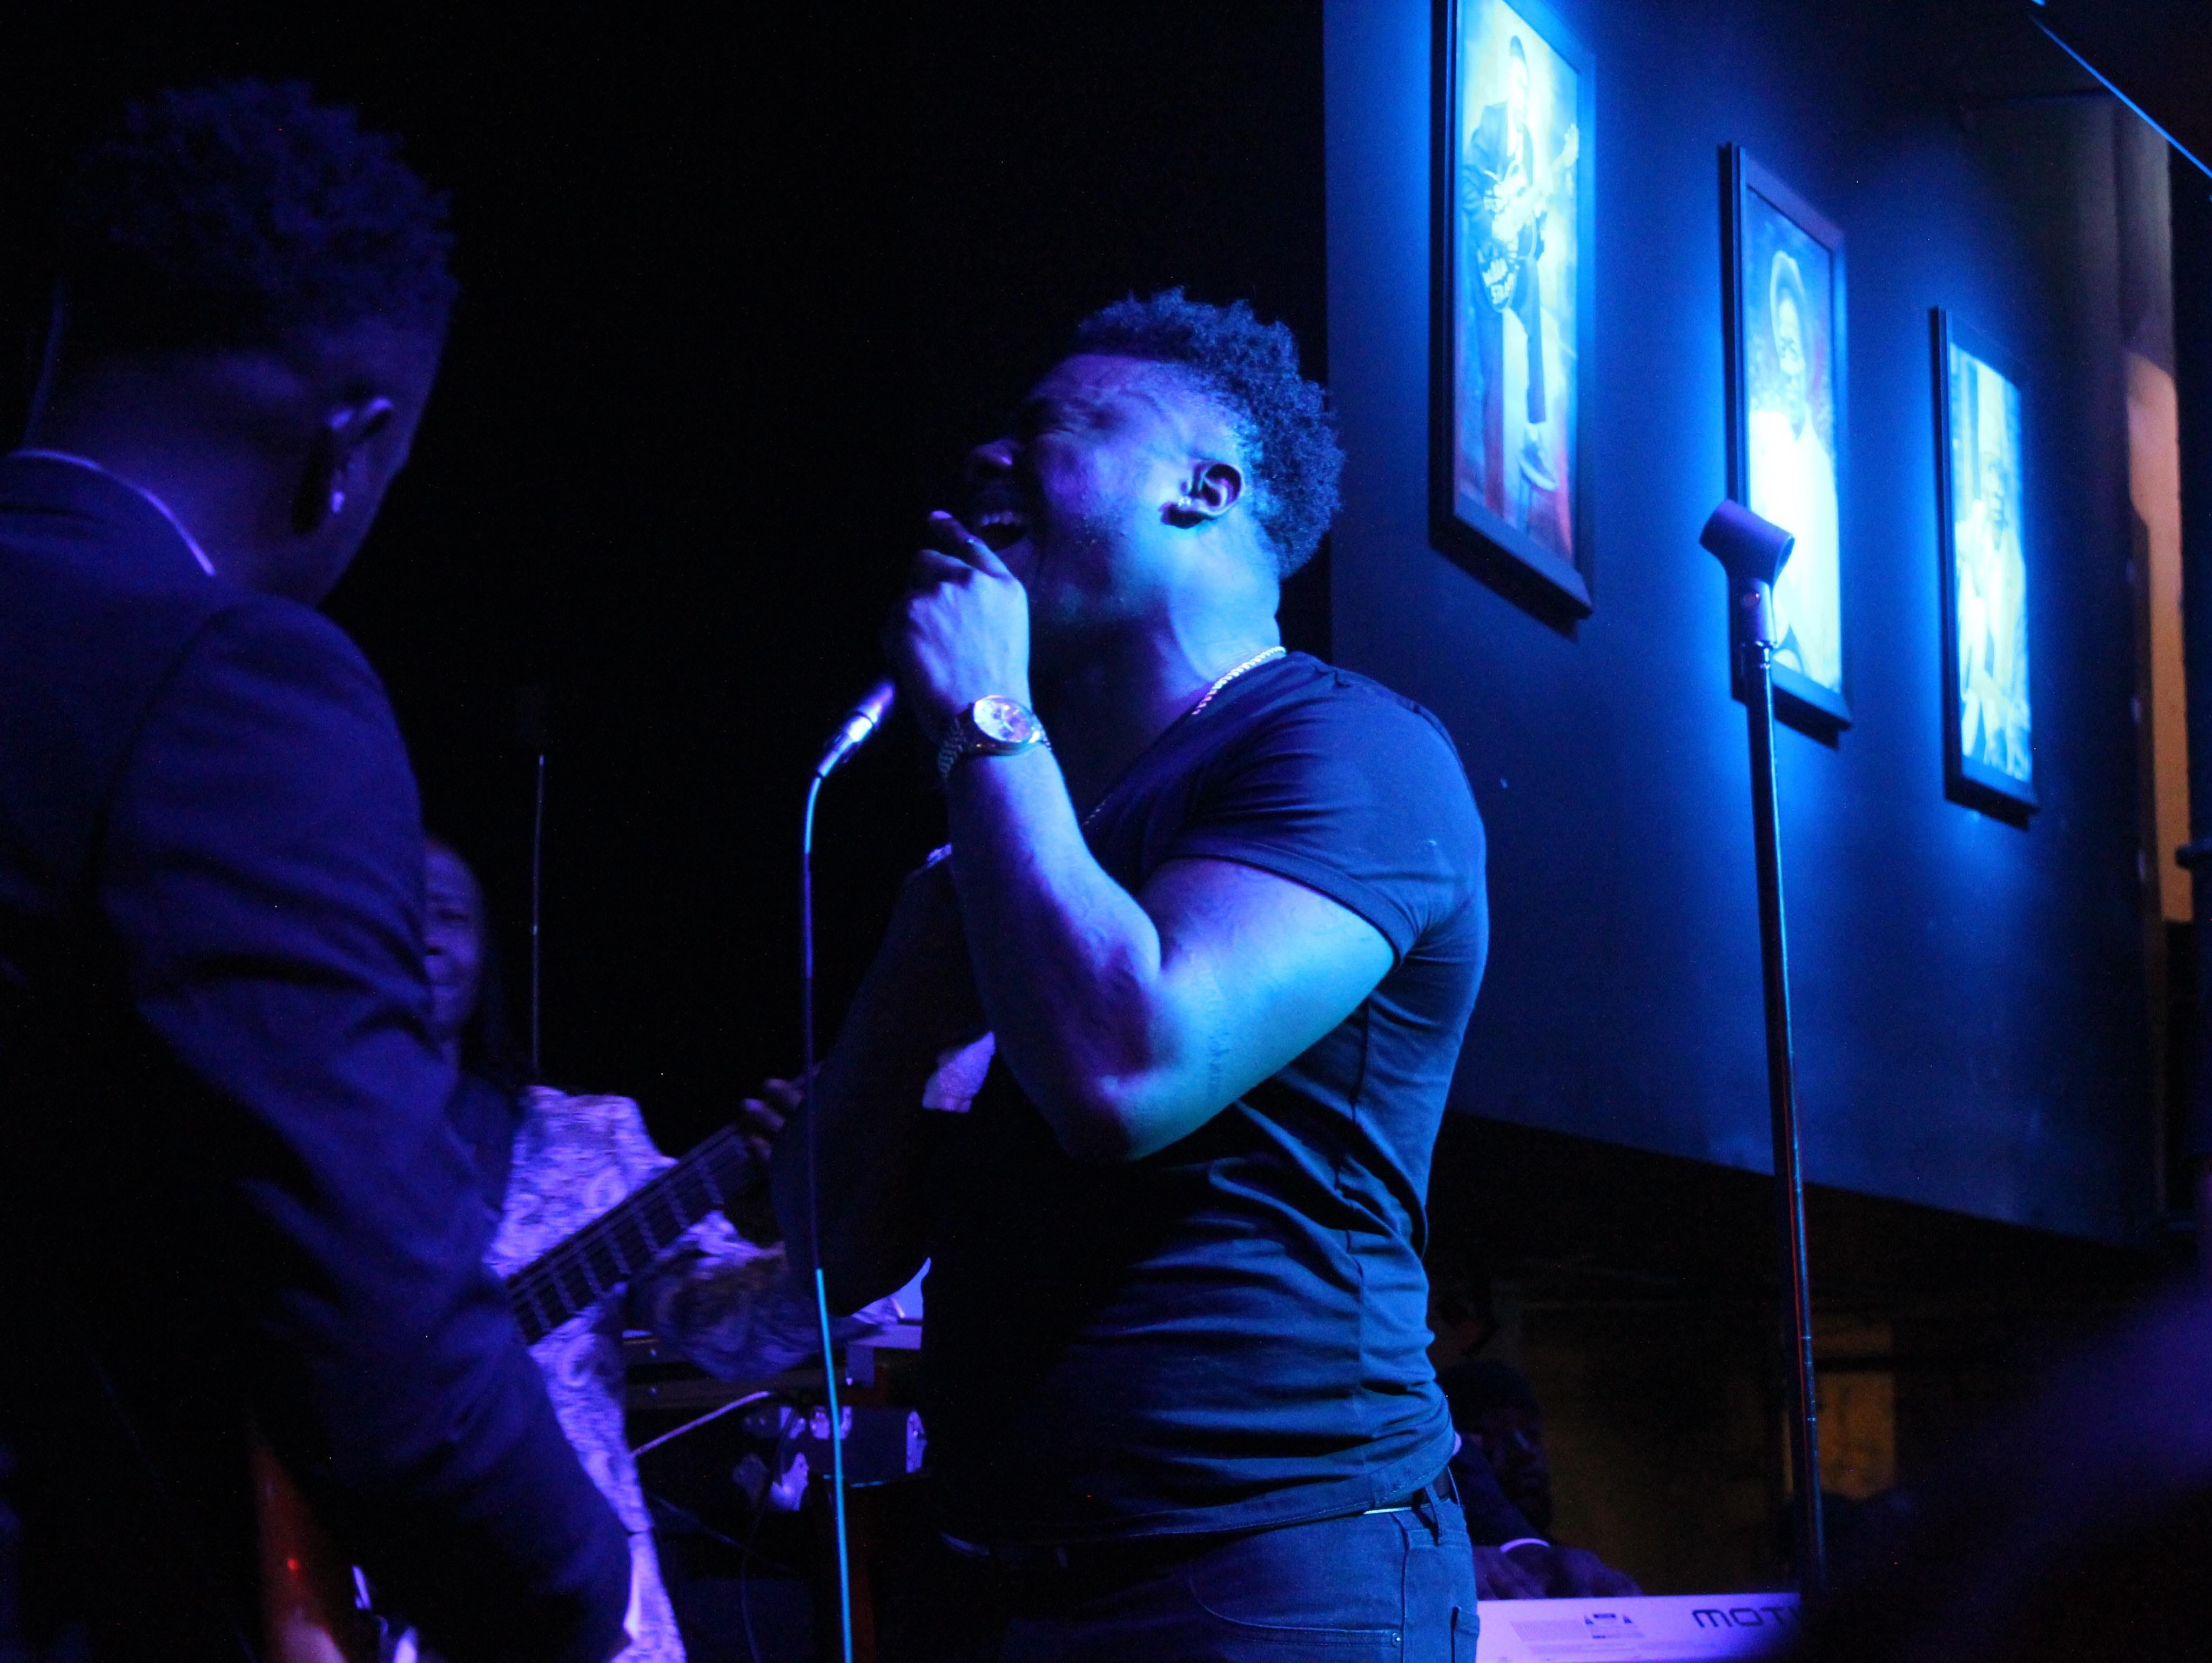 """""""The Voice"""" top 3 finalist Kirk Jay, a Montgomery resident and Bay Minette native, sings with his band Kuntry Funk in a New Year's Eve concert Monday, Dec. 31, 2018, at B.B. King's Blues Club in Montgomery."""